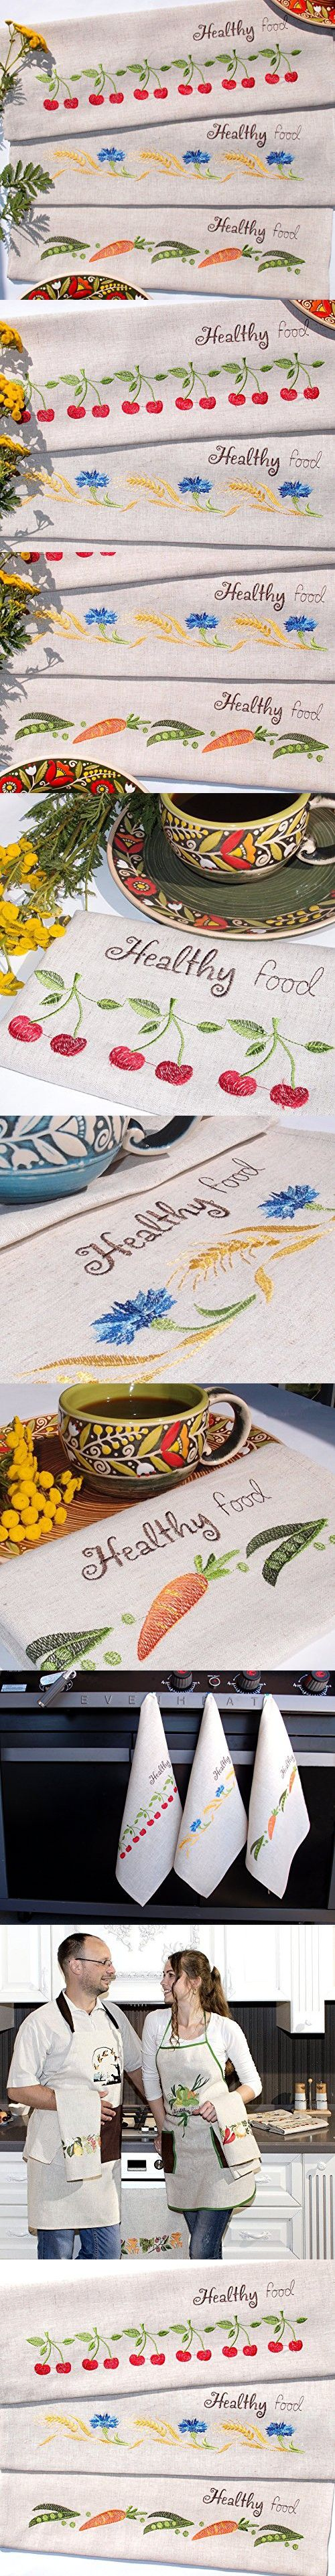 """H-line 17.5""""x25.6"""" Set of 3 EMBROIDERED LINEN kitchen dish tea towels kitchen Absorbent Gift for Home, Housewarming Anniversary Birthday Women Her Hostess Friends Christmas gifts (Cherry-Carrot-Wheat)"""